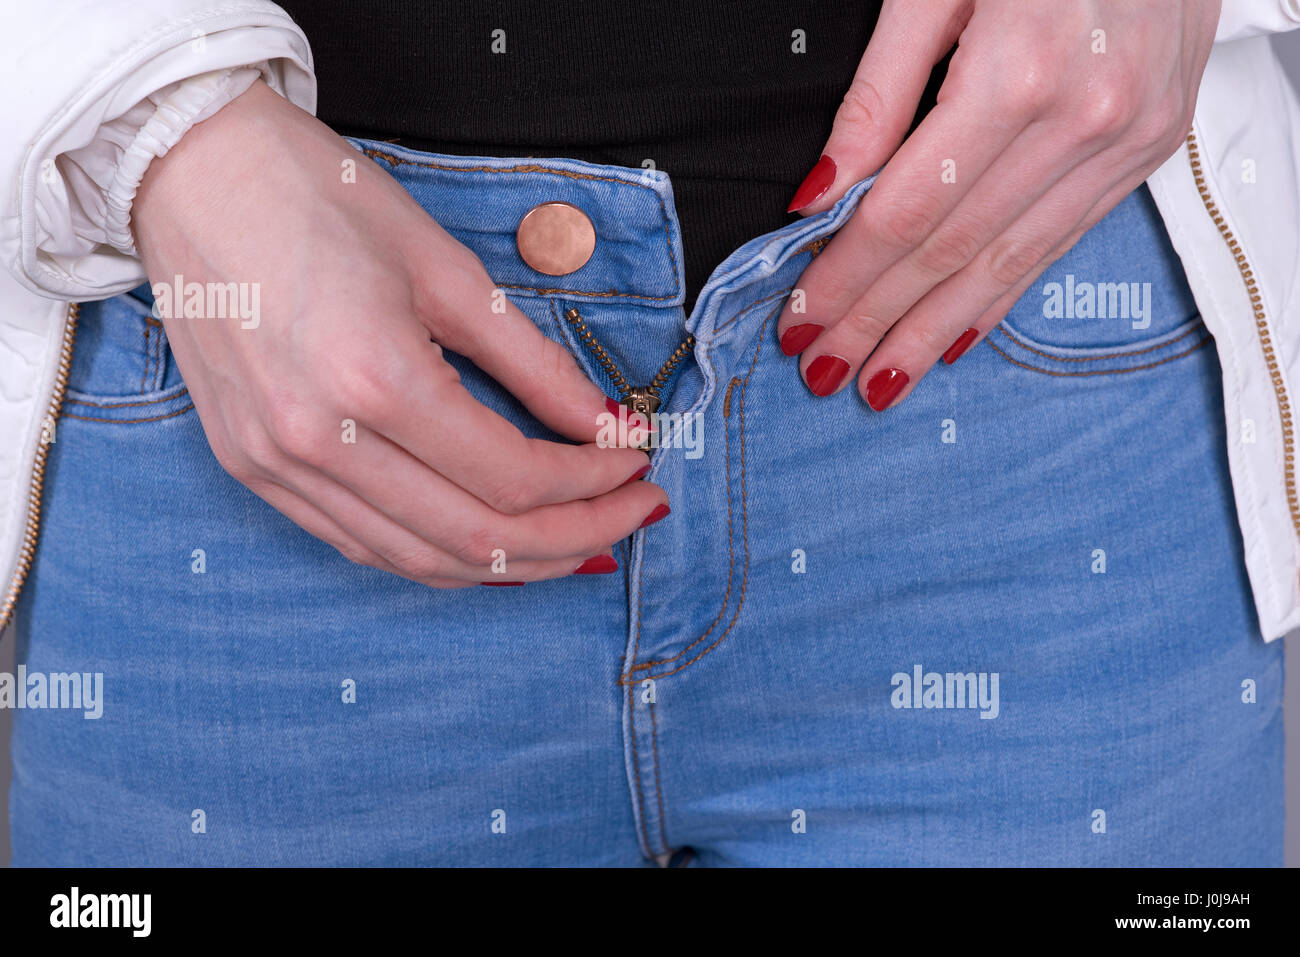 Woman zipping her blue jeans zip - Stock Image